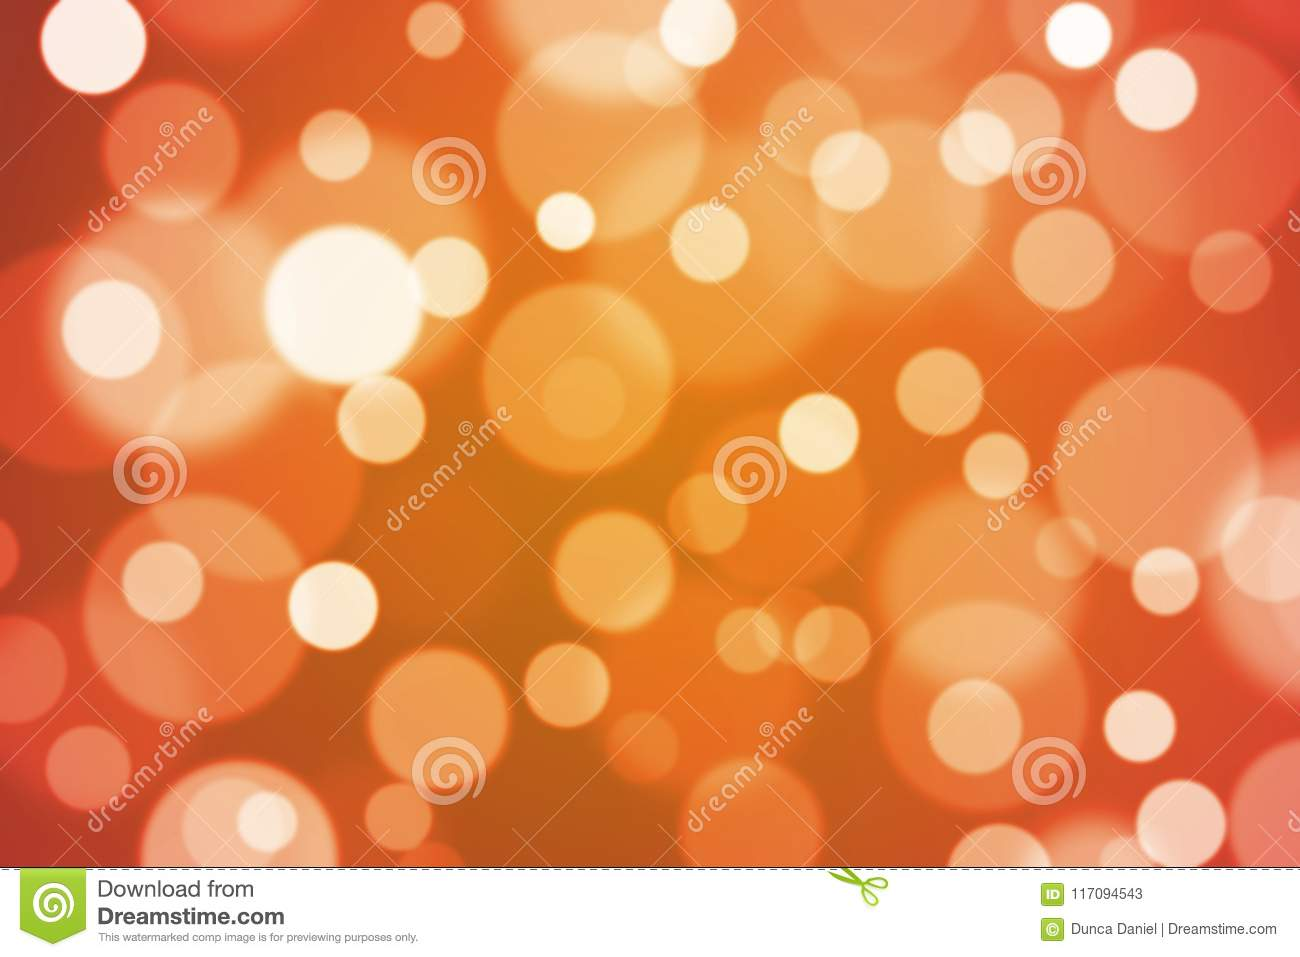 Bright colorful bokeh lights blur abstract background